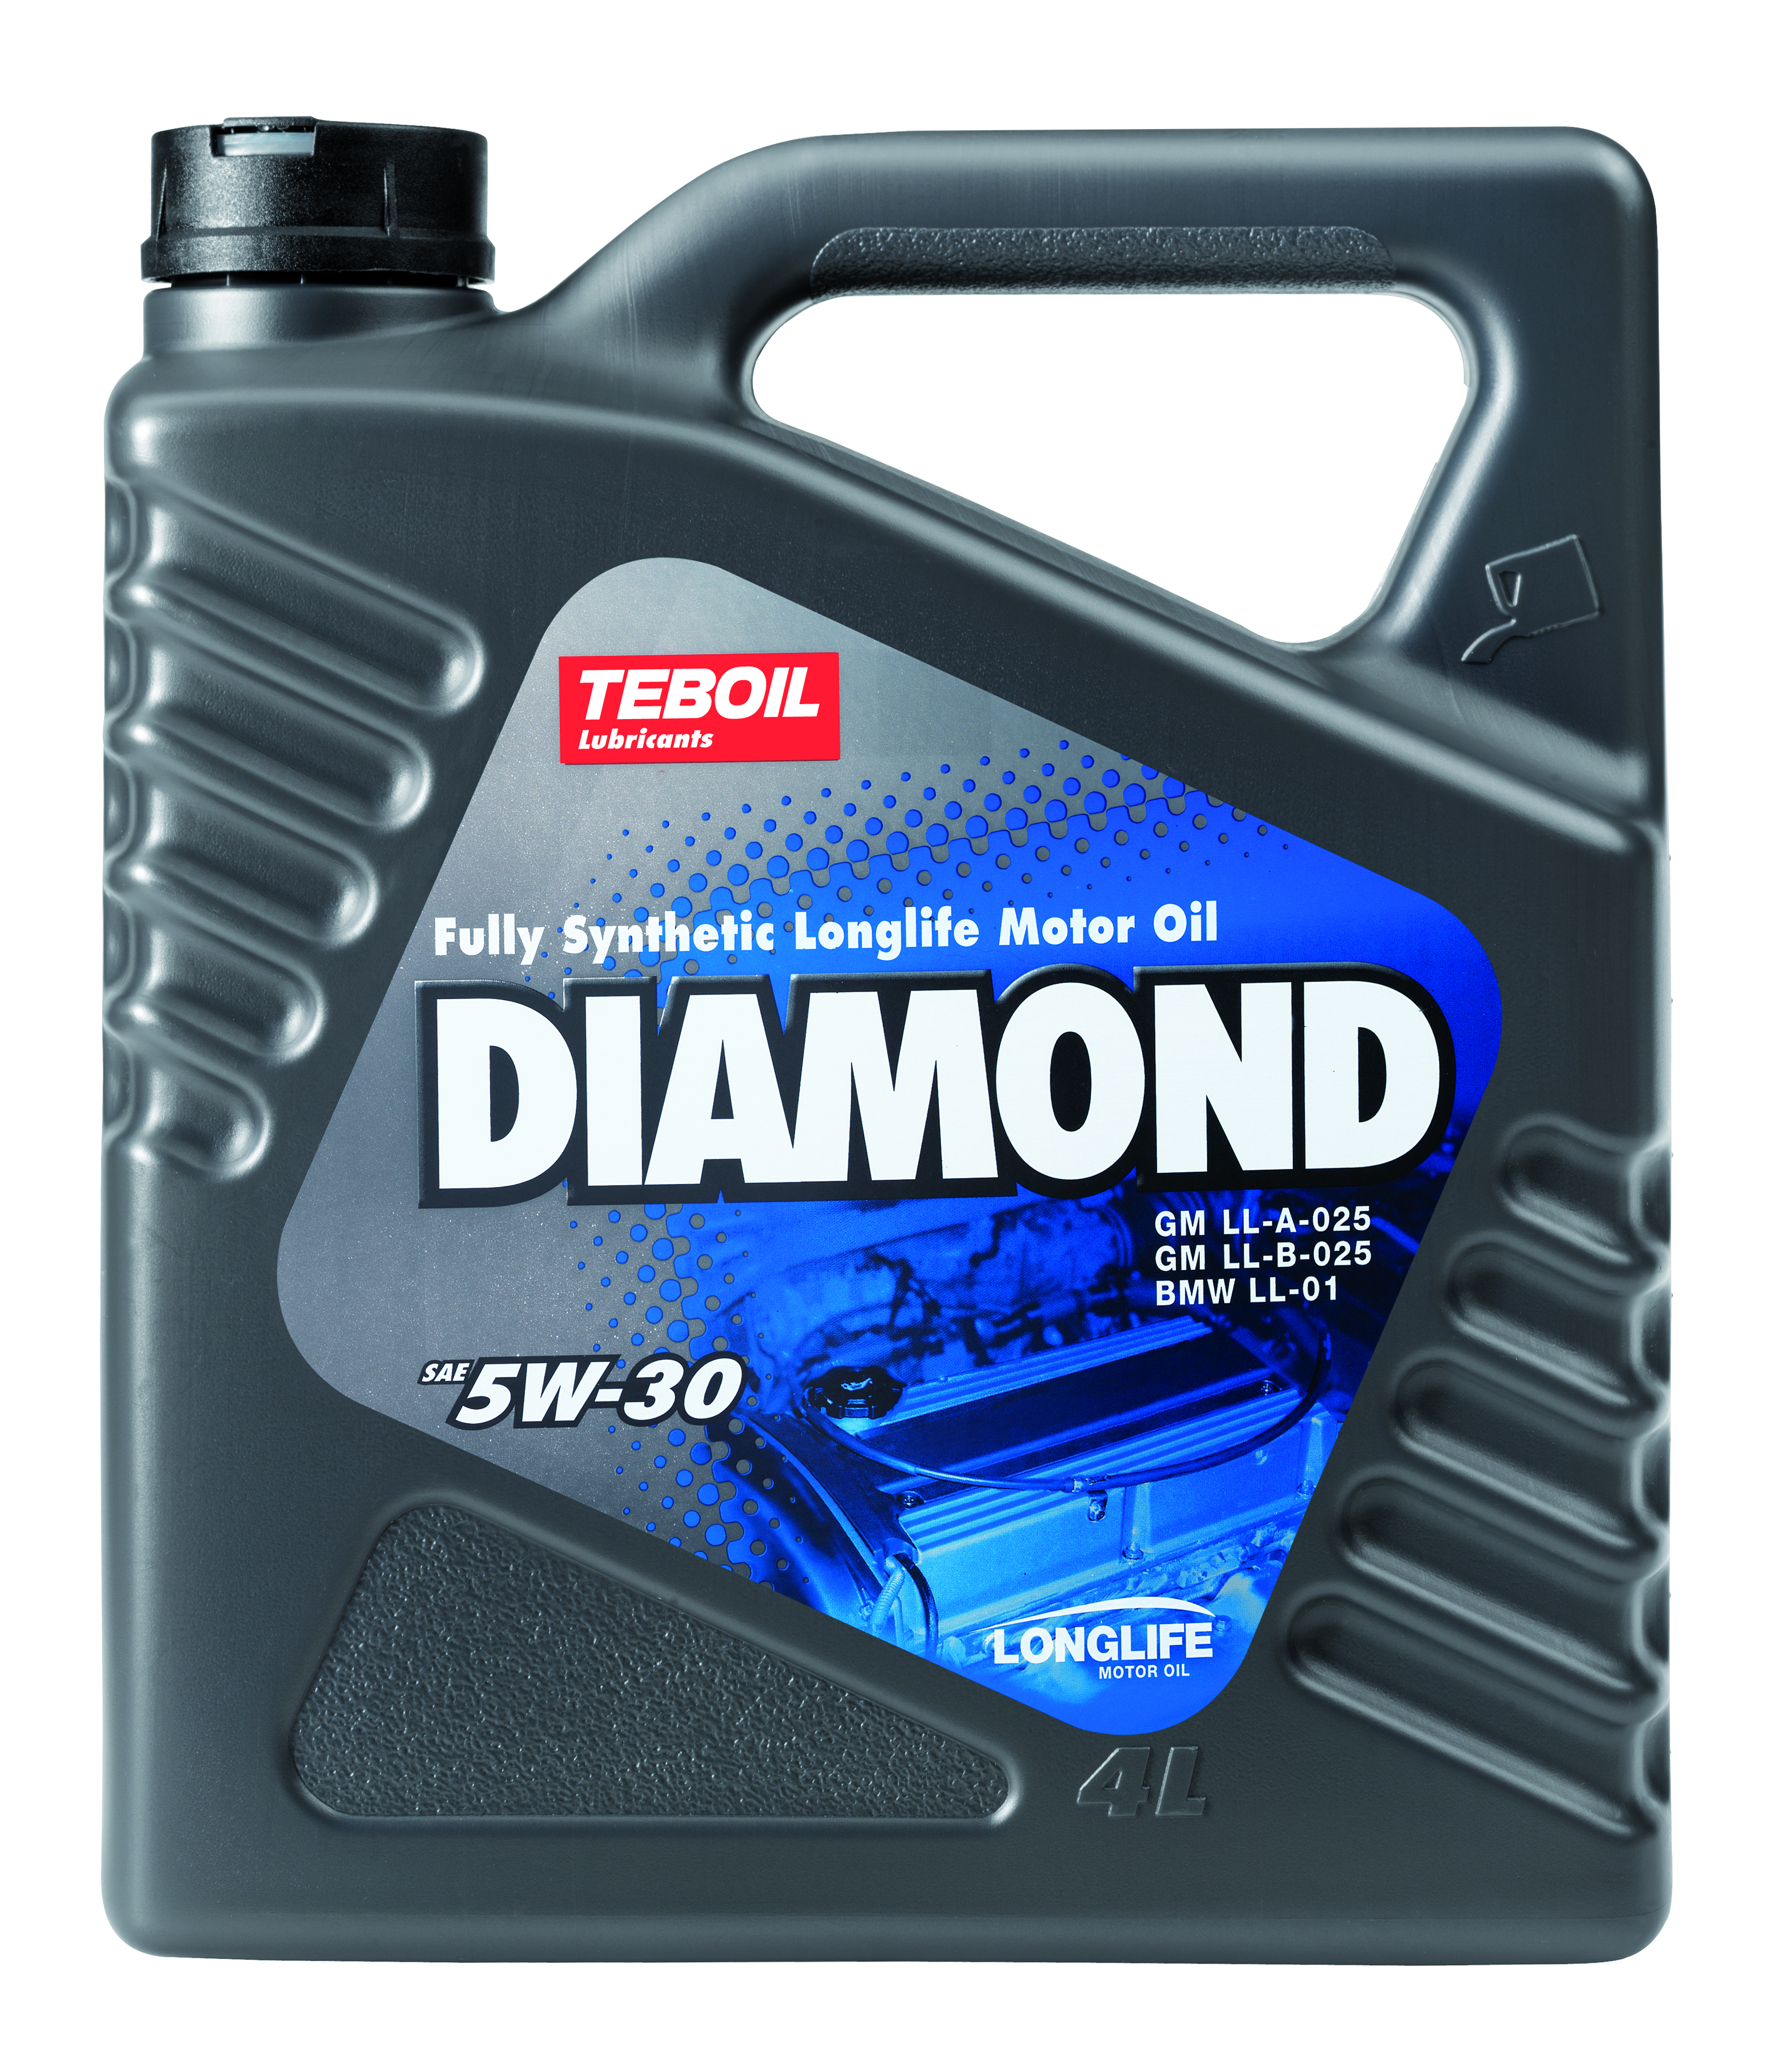 Teboil Diamond SAE 5W-30